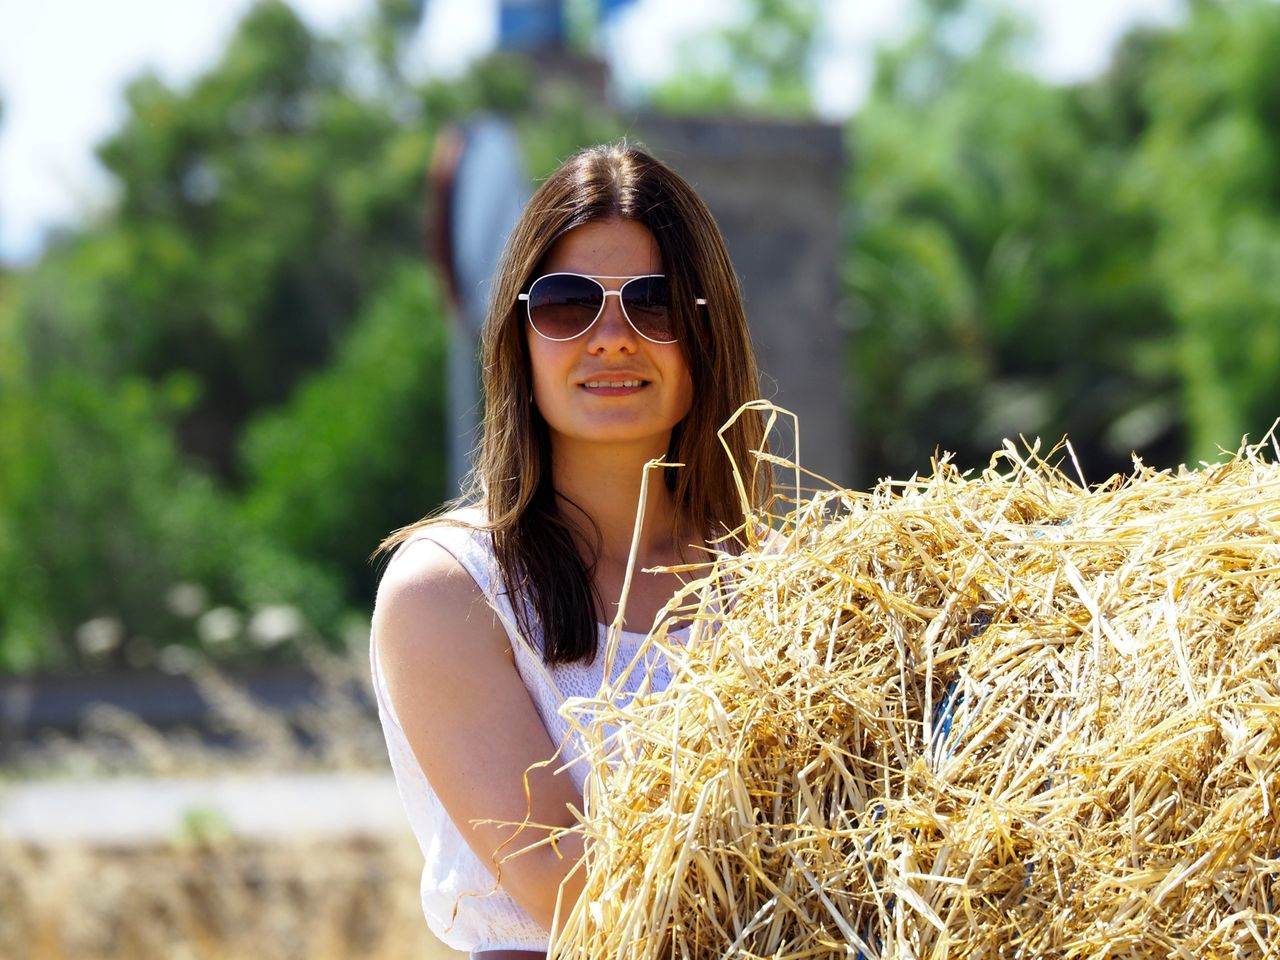 Young Woman In Sunglasses Standing By Dry Grass